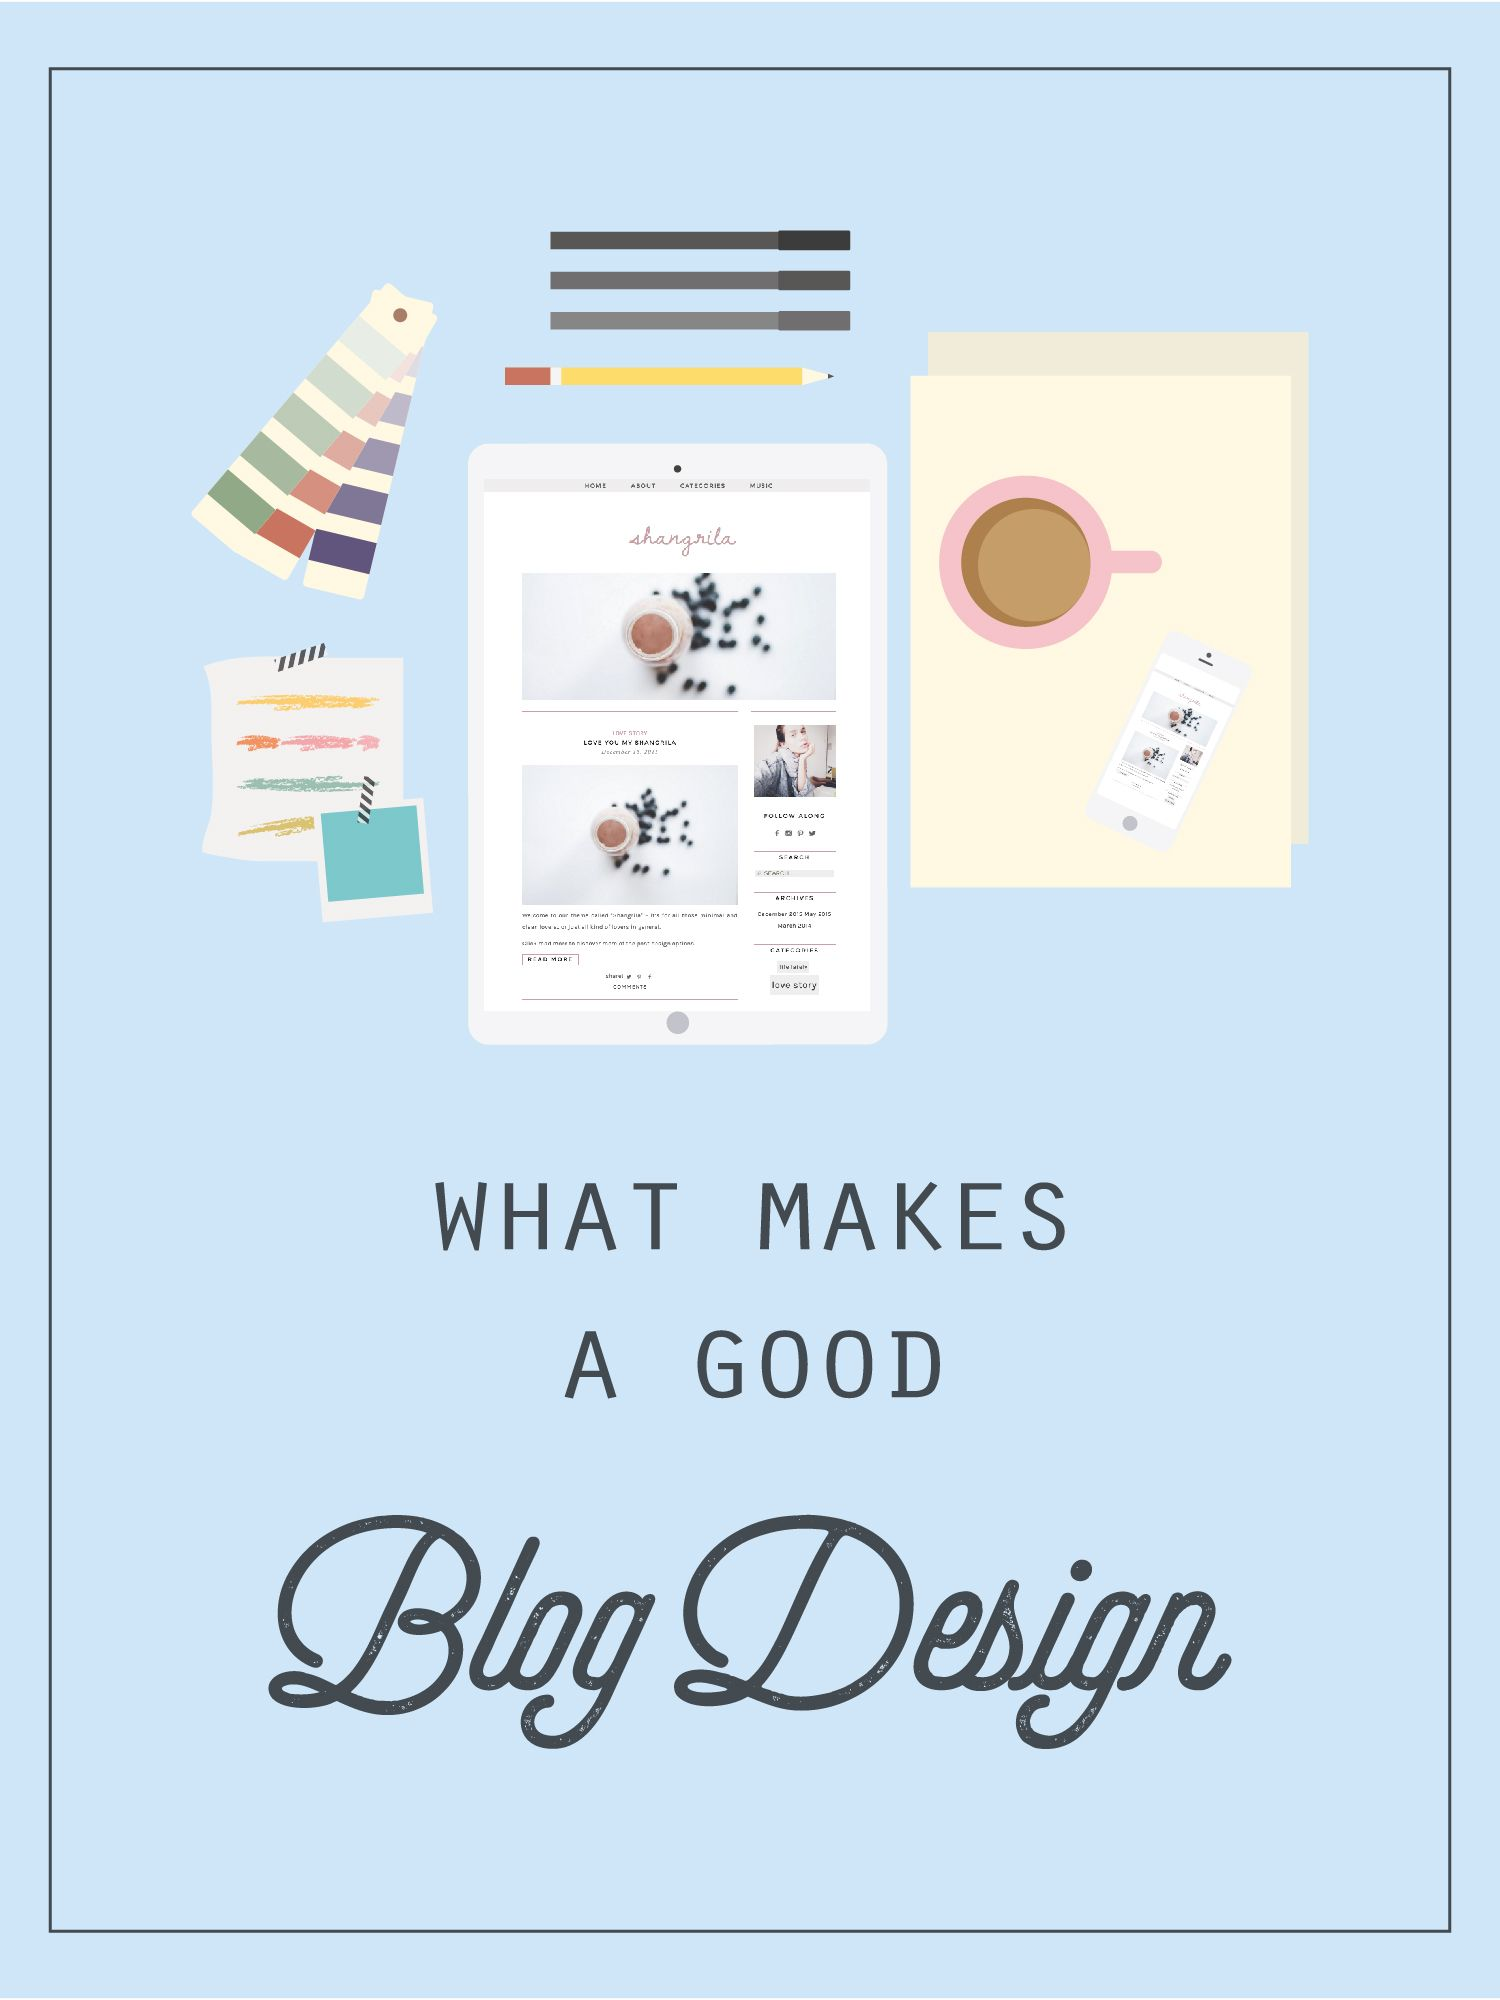 What Makes A Good Blog Design? Free Blog Template, Blogger ...